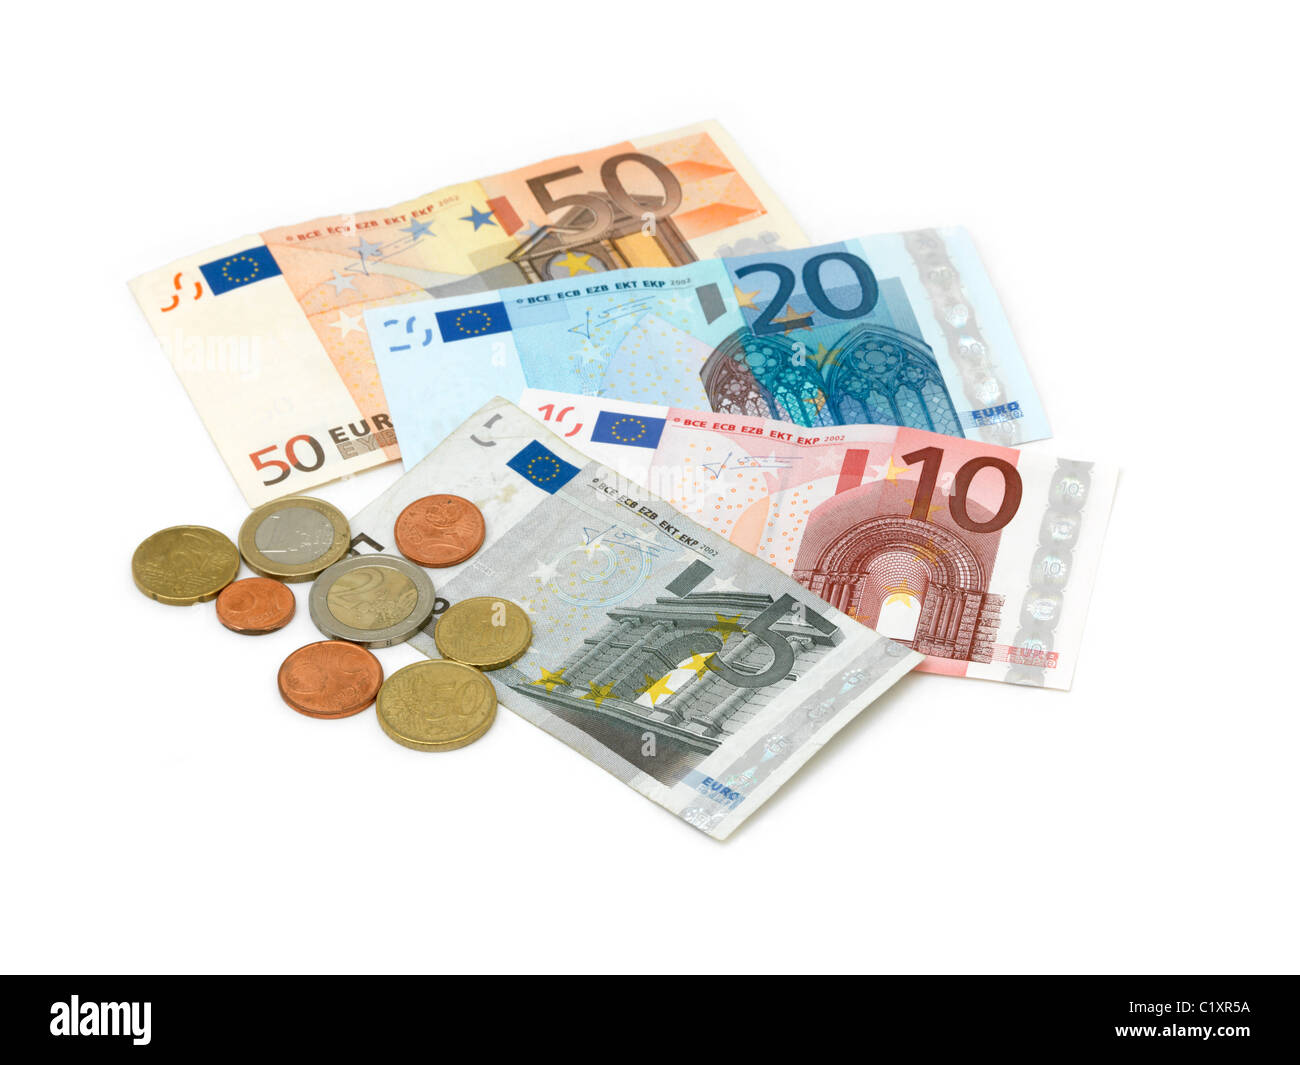 Euros Banknotes And Coins 5,10,20,50 - Stock Image